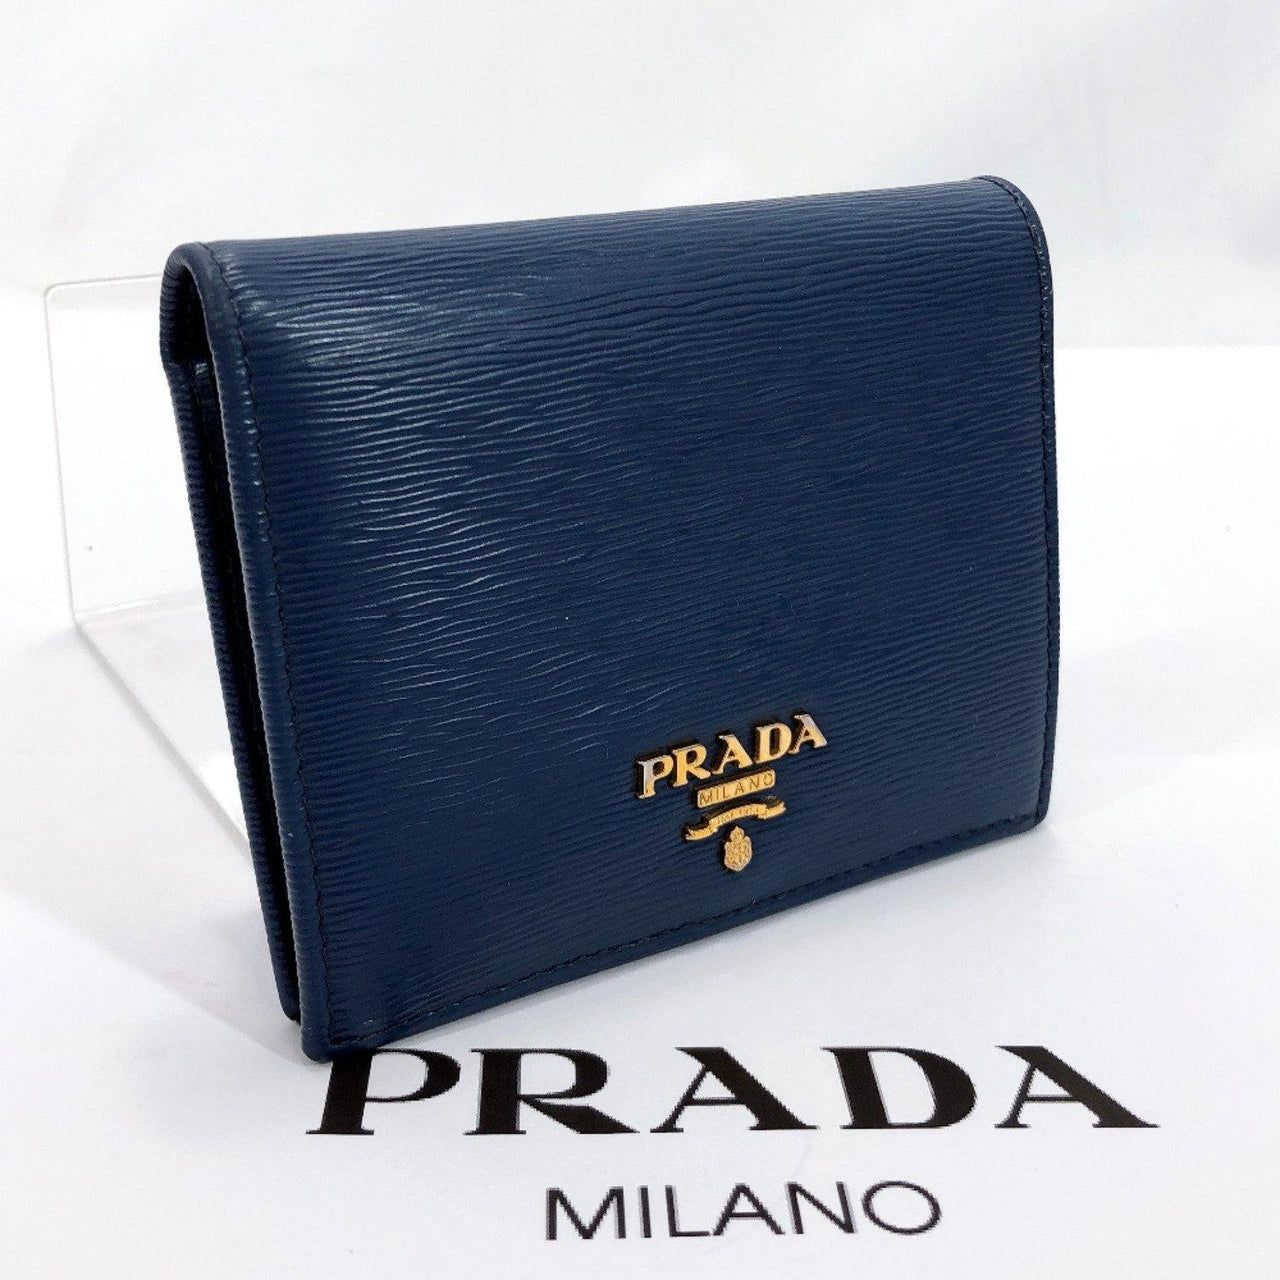 PRADA wallet leather blue Women Used - JP-BRANDS.com